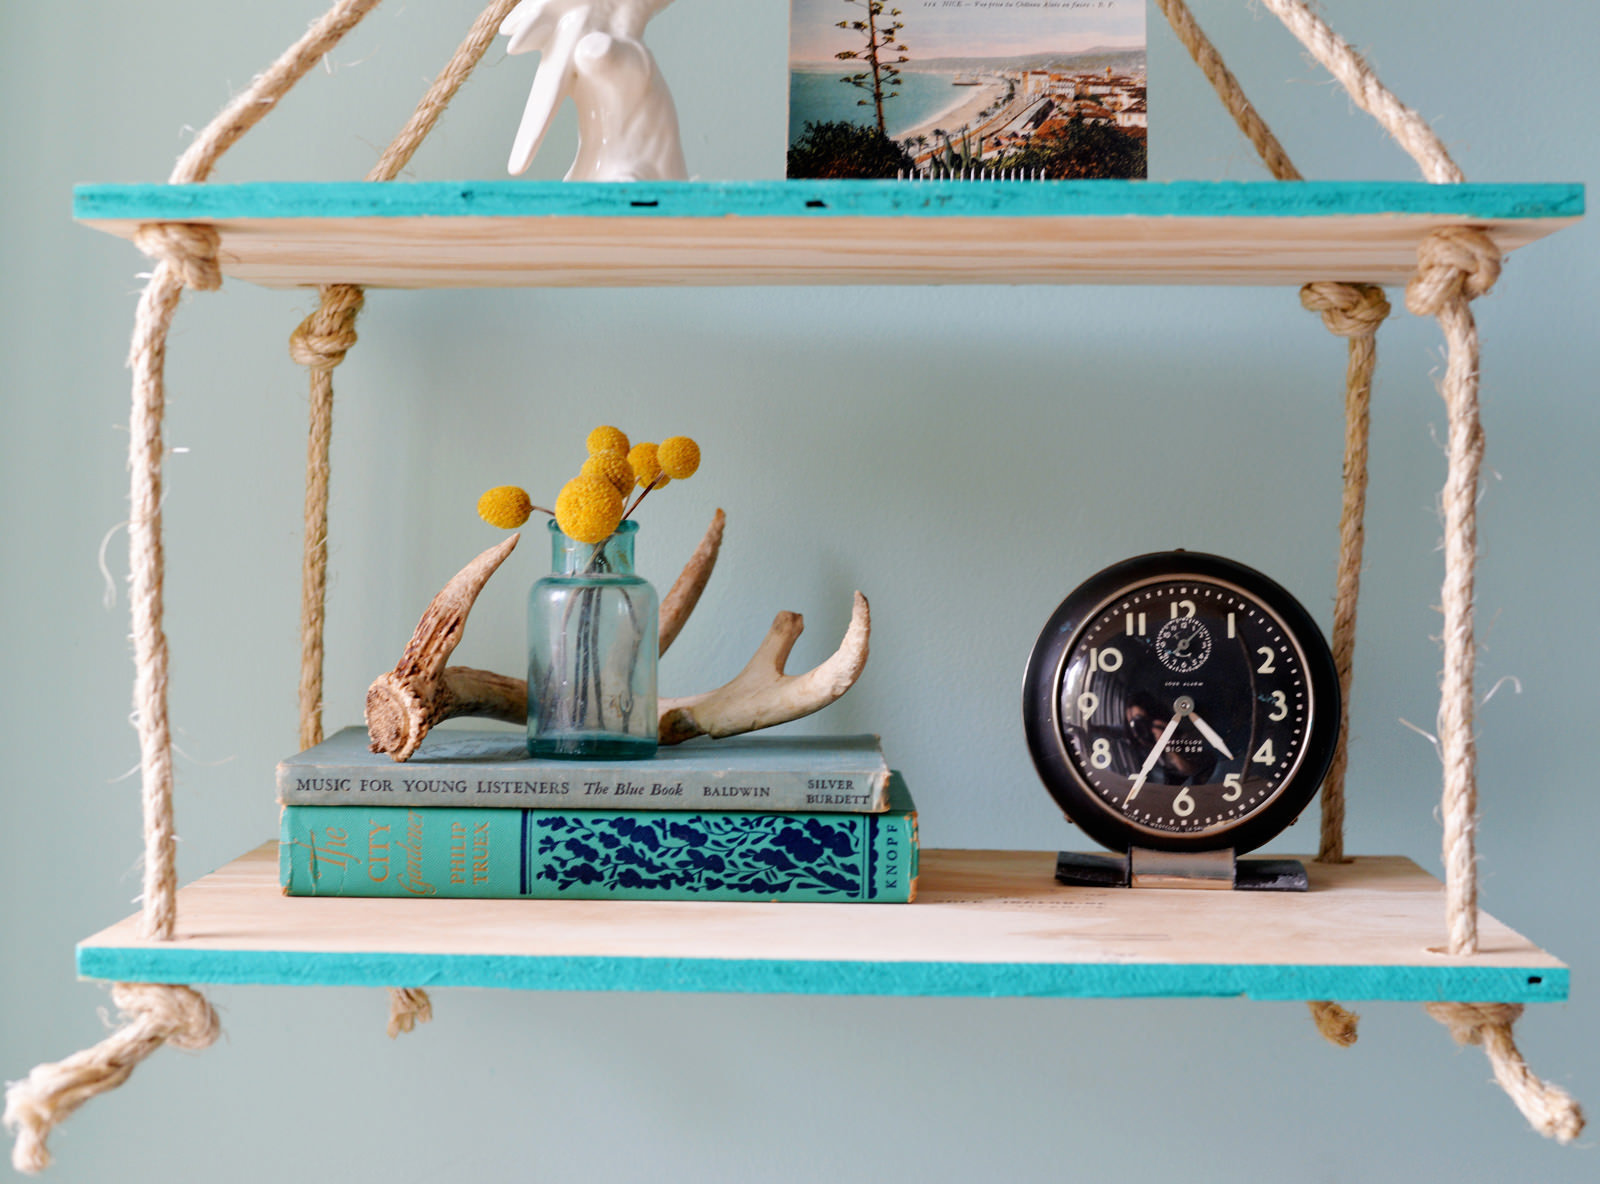 How to make a floating shelf Step-by-step DIY guide - Suspended shelves designed for storing books, decor items, photo frames, family photo albums